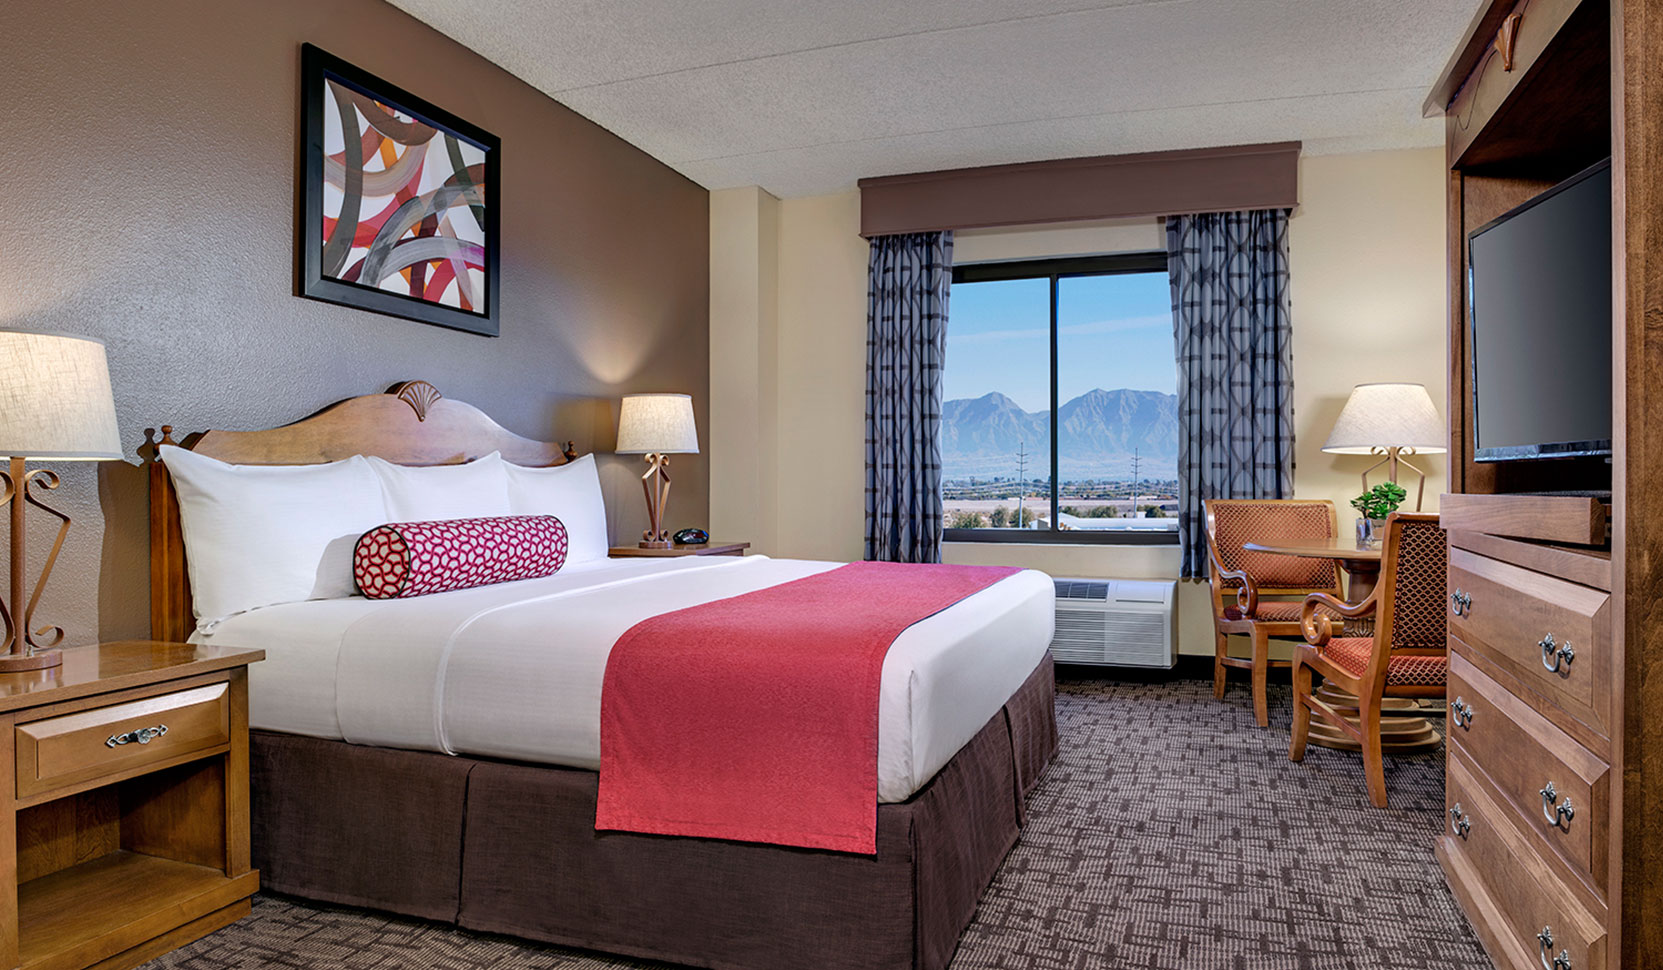 Cheap Hotel Rooms for Locals in Las Vegas | Fiesta Rancho